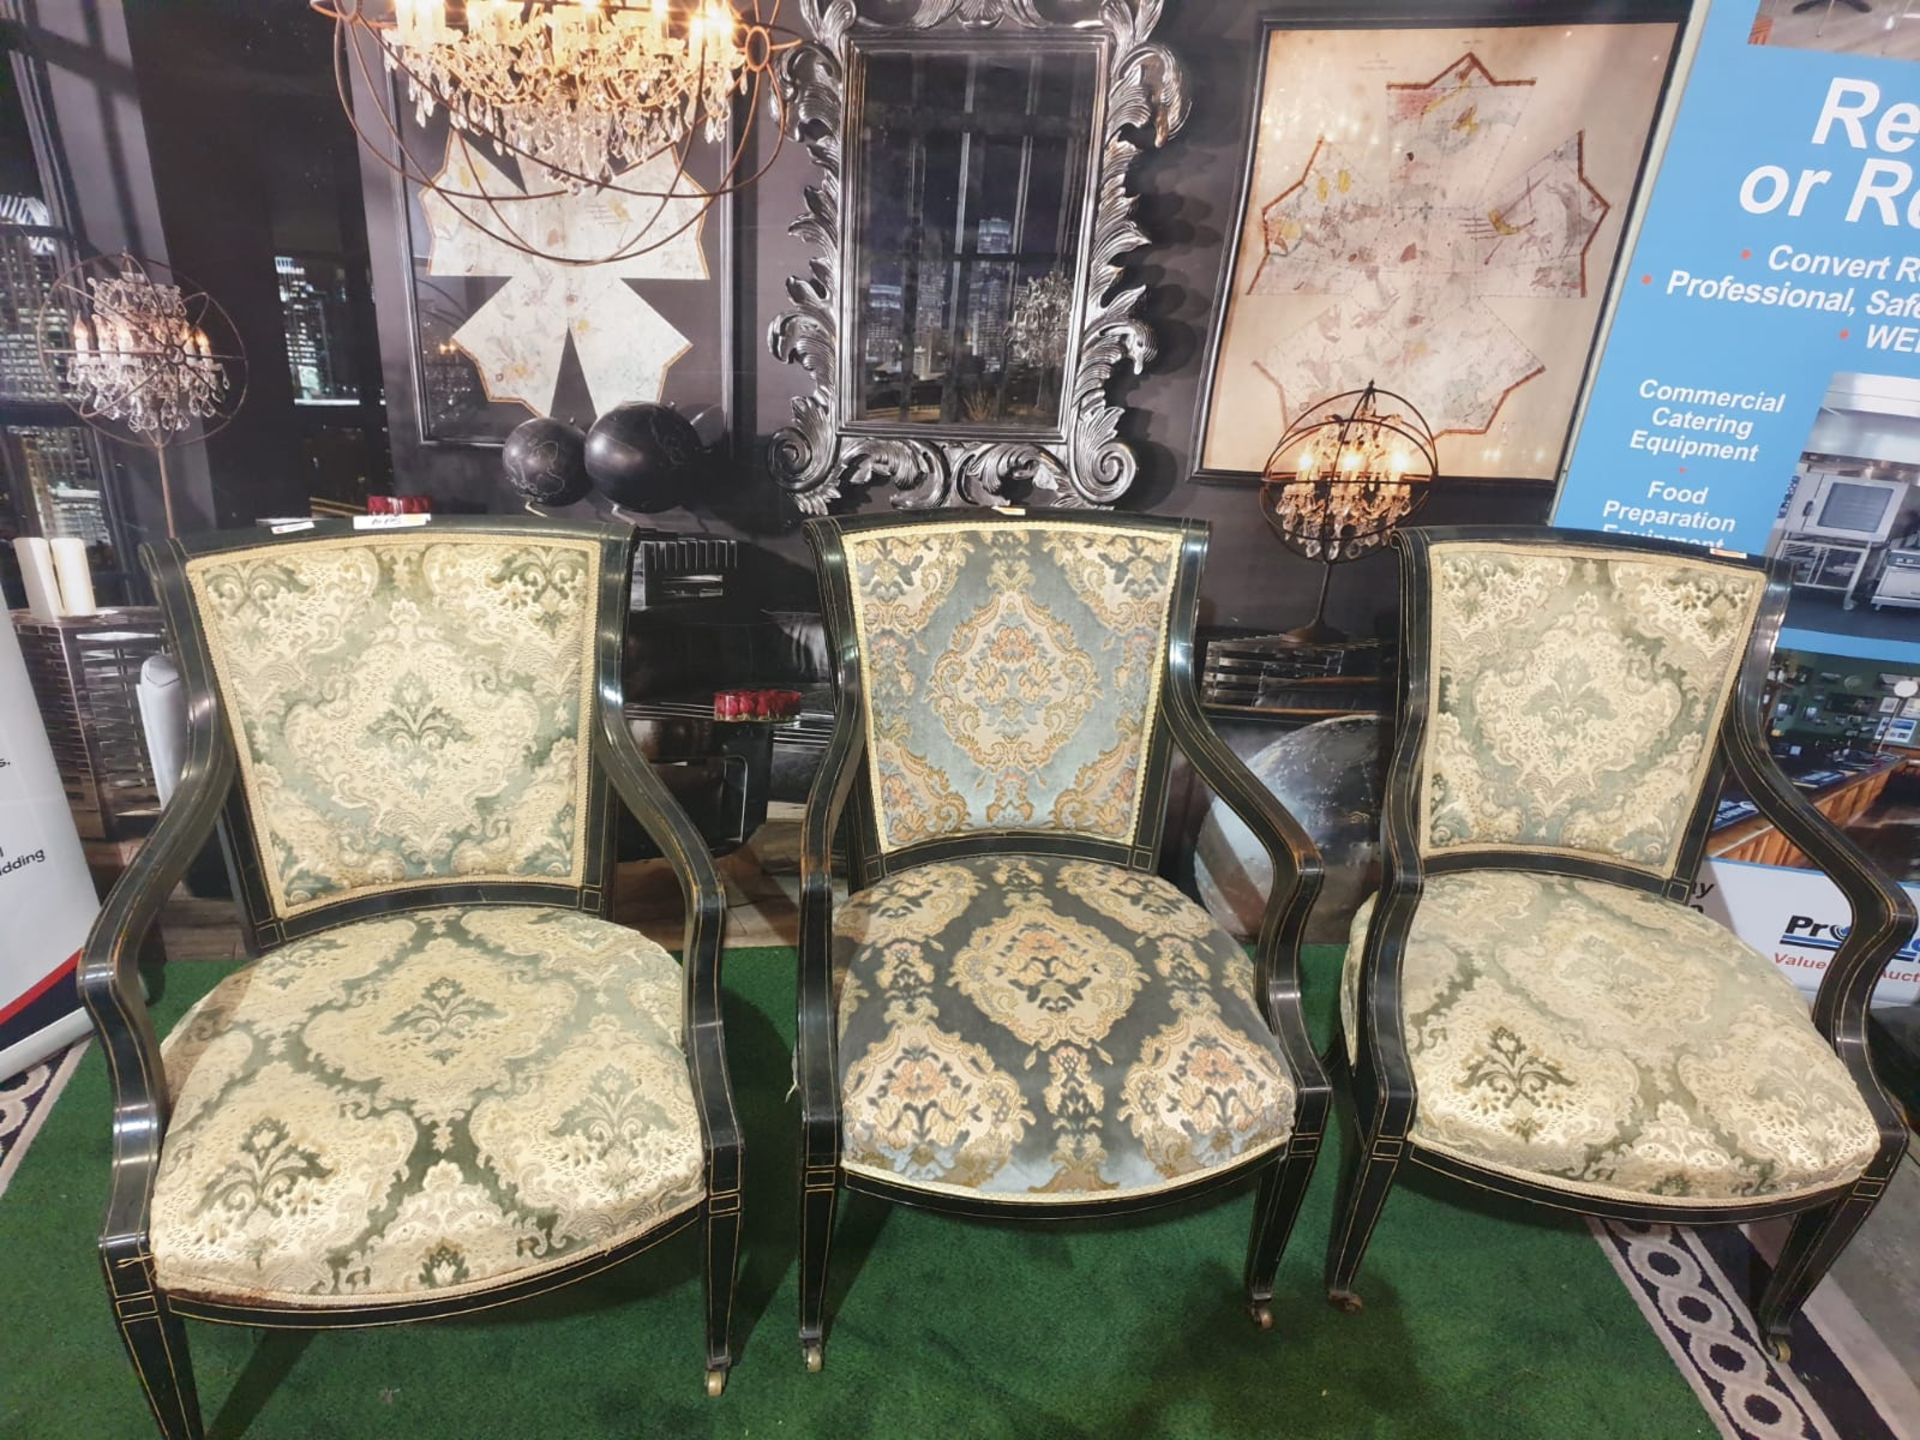 A set of 3 x George III/Neoclassical Style Carver Chairs. Most likely produced during the - Image 3 of 3